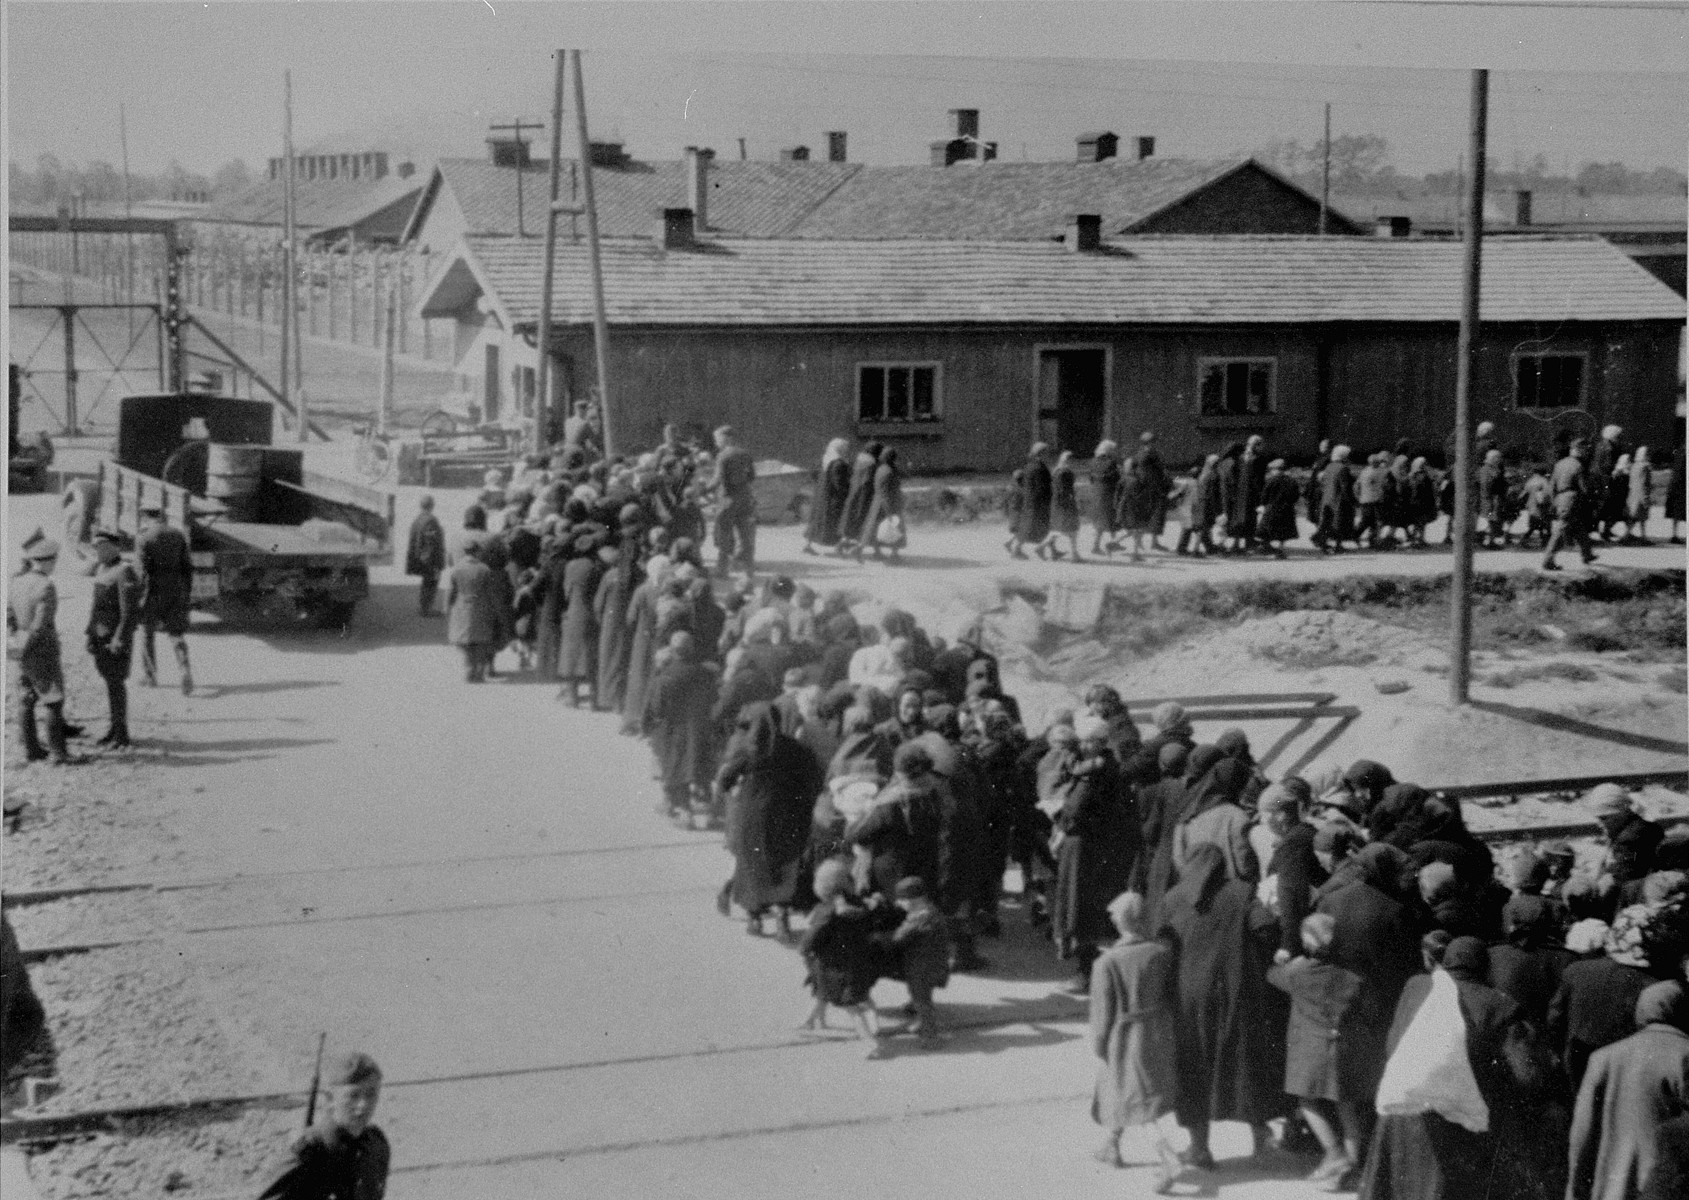 Jewish women and children who have been selected for death, walk in a line towards the gas chambers.   The gate at the upper left  leads to the section of the camp on the south side of the ramp known as BI.